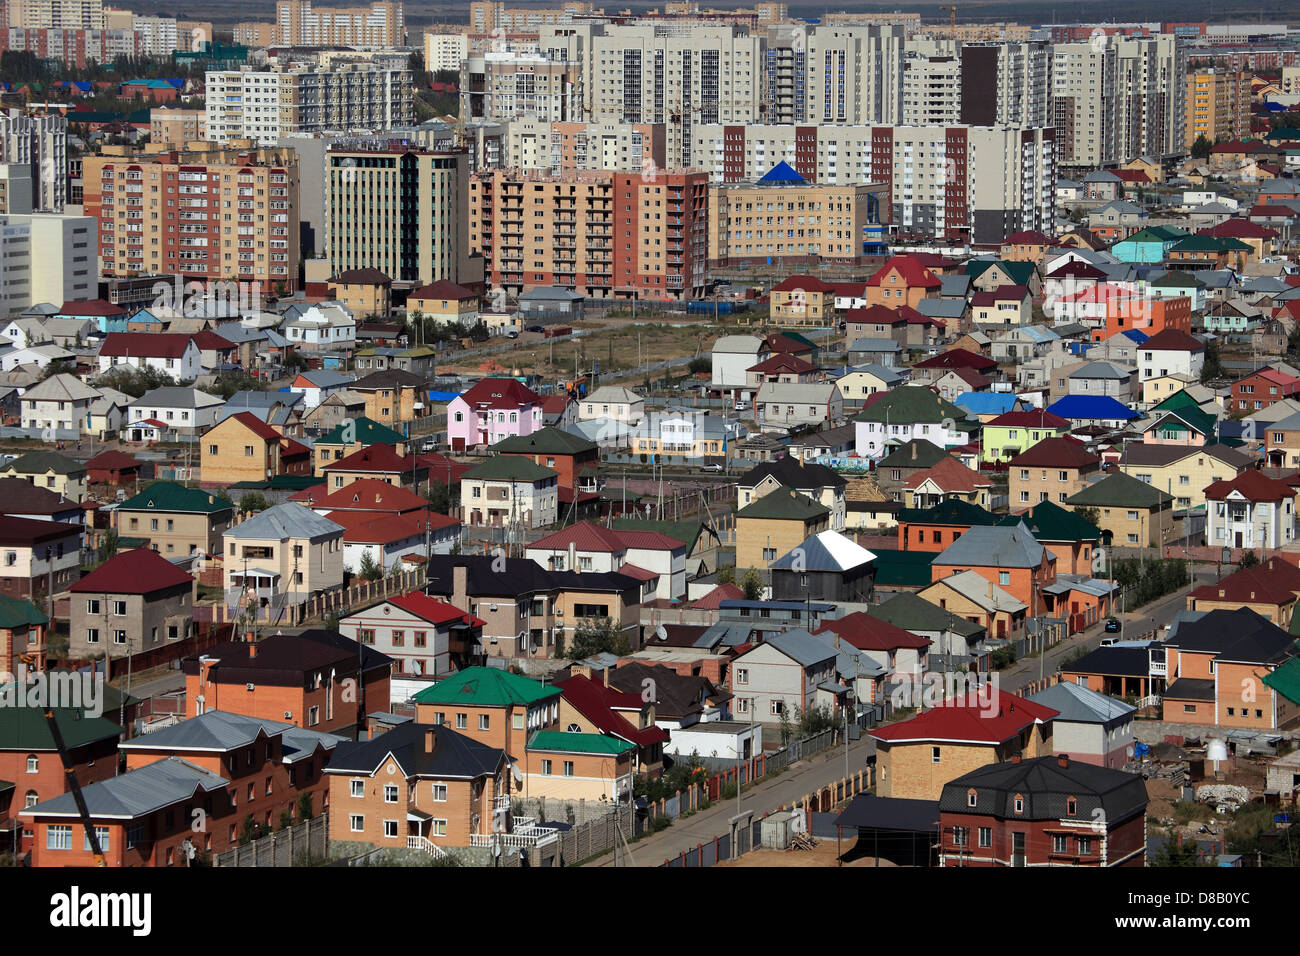 Astana - dwelling houses district - Stock Image